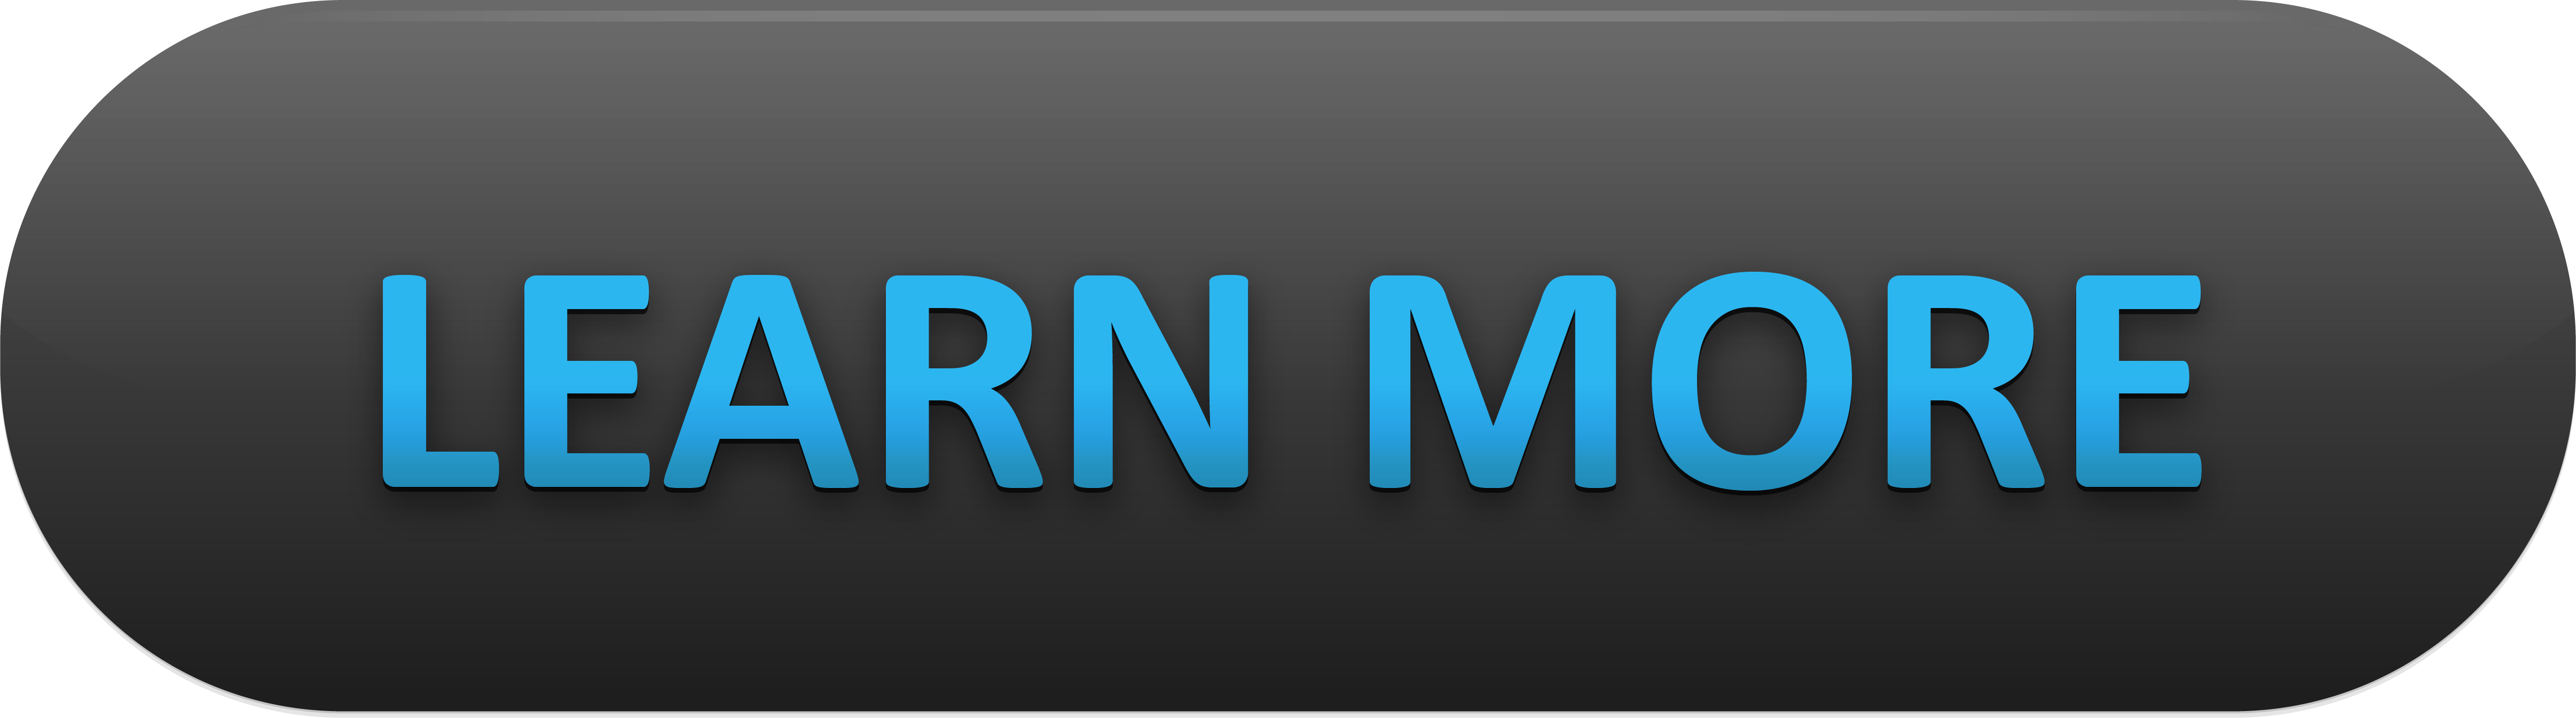 learn_more-button